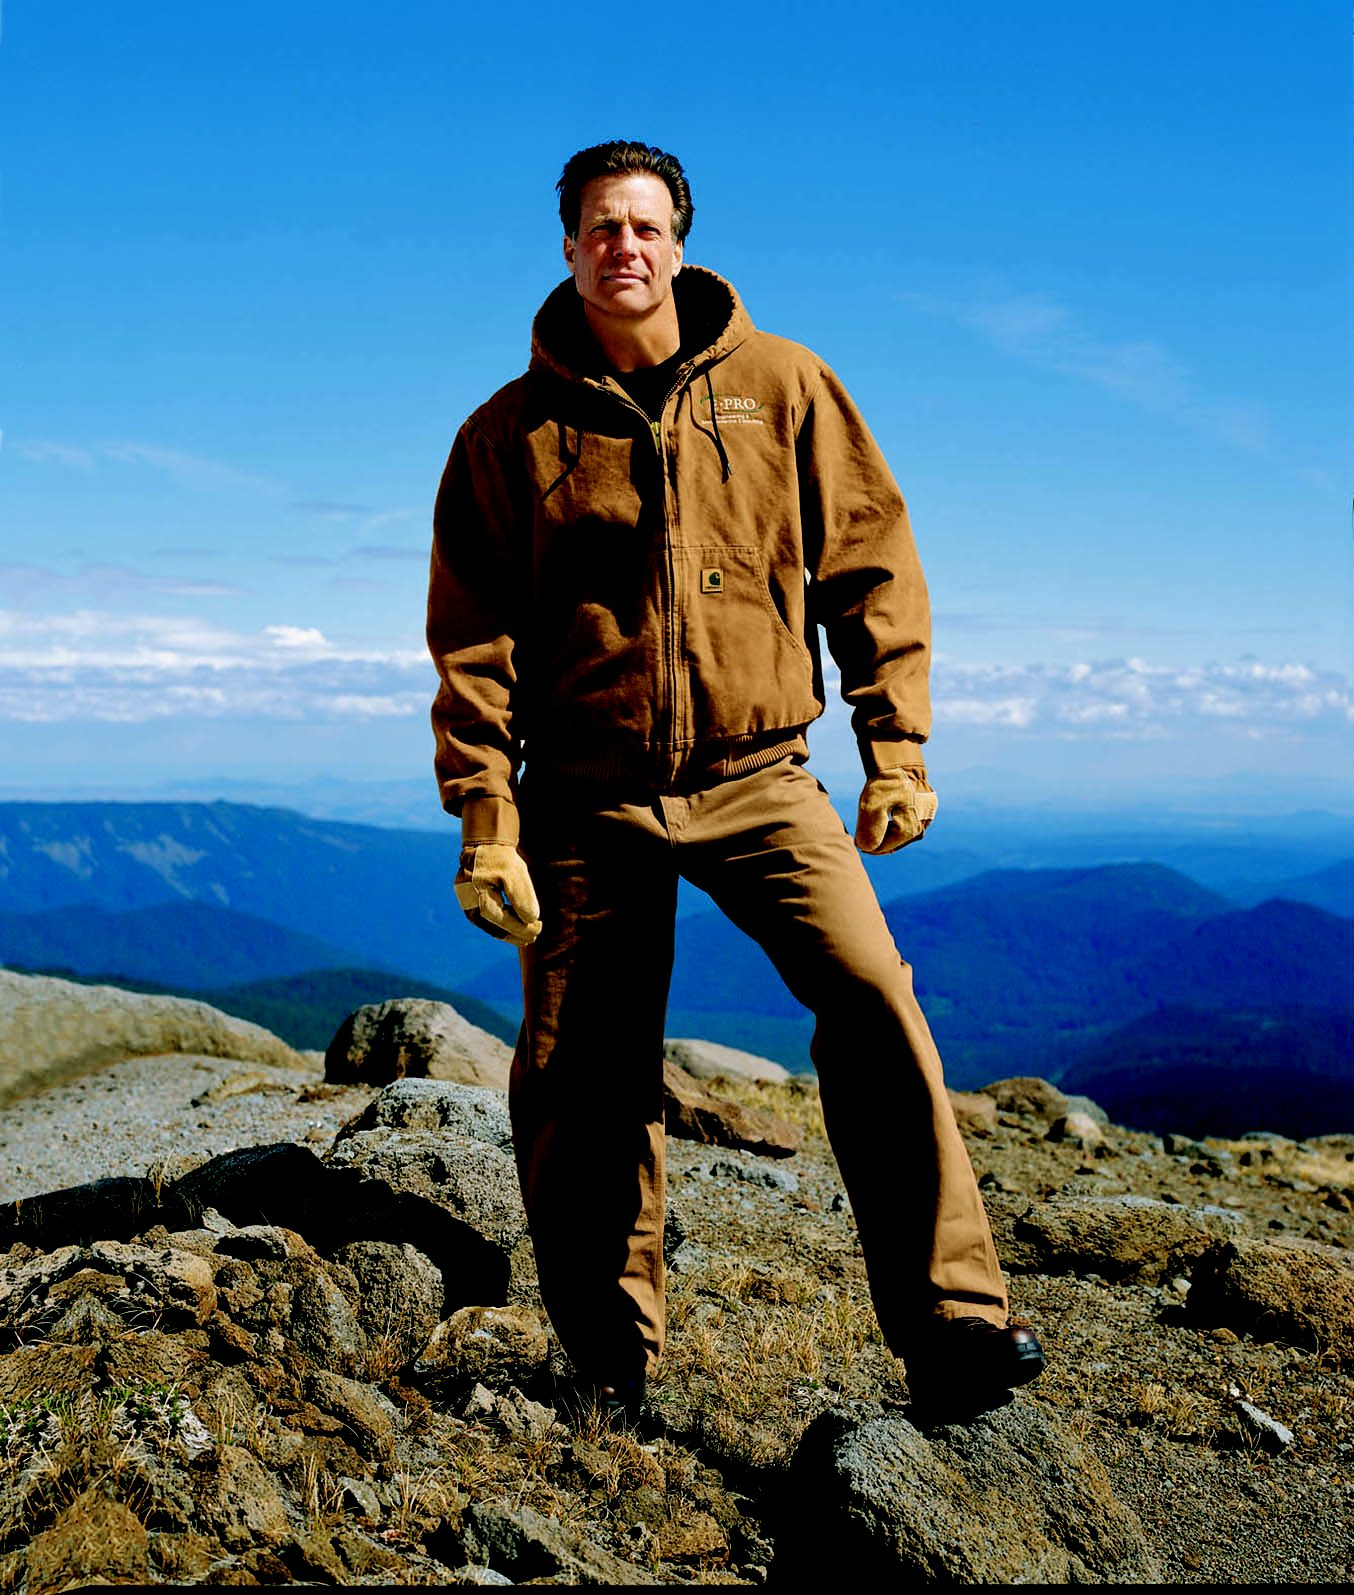 Outdoor worker on a mountain in brown Carhartt jacket and pants